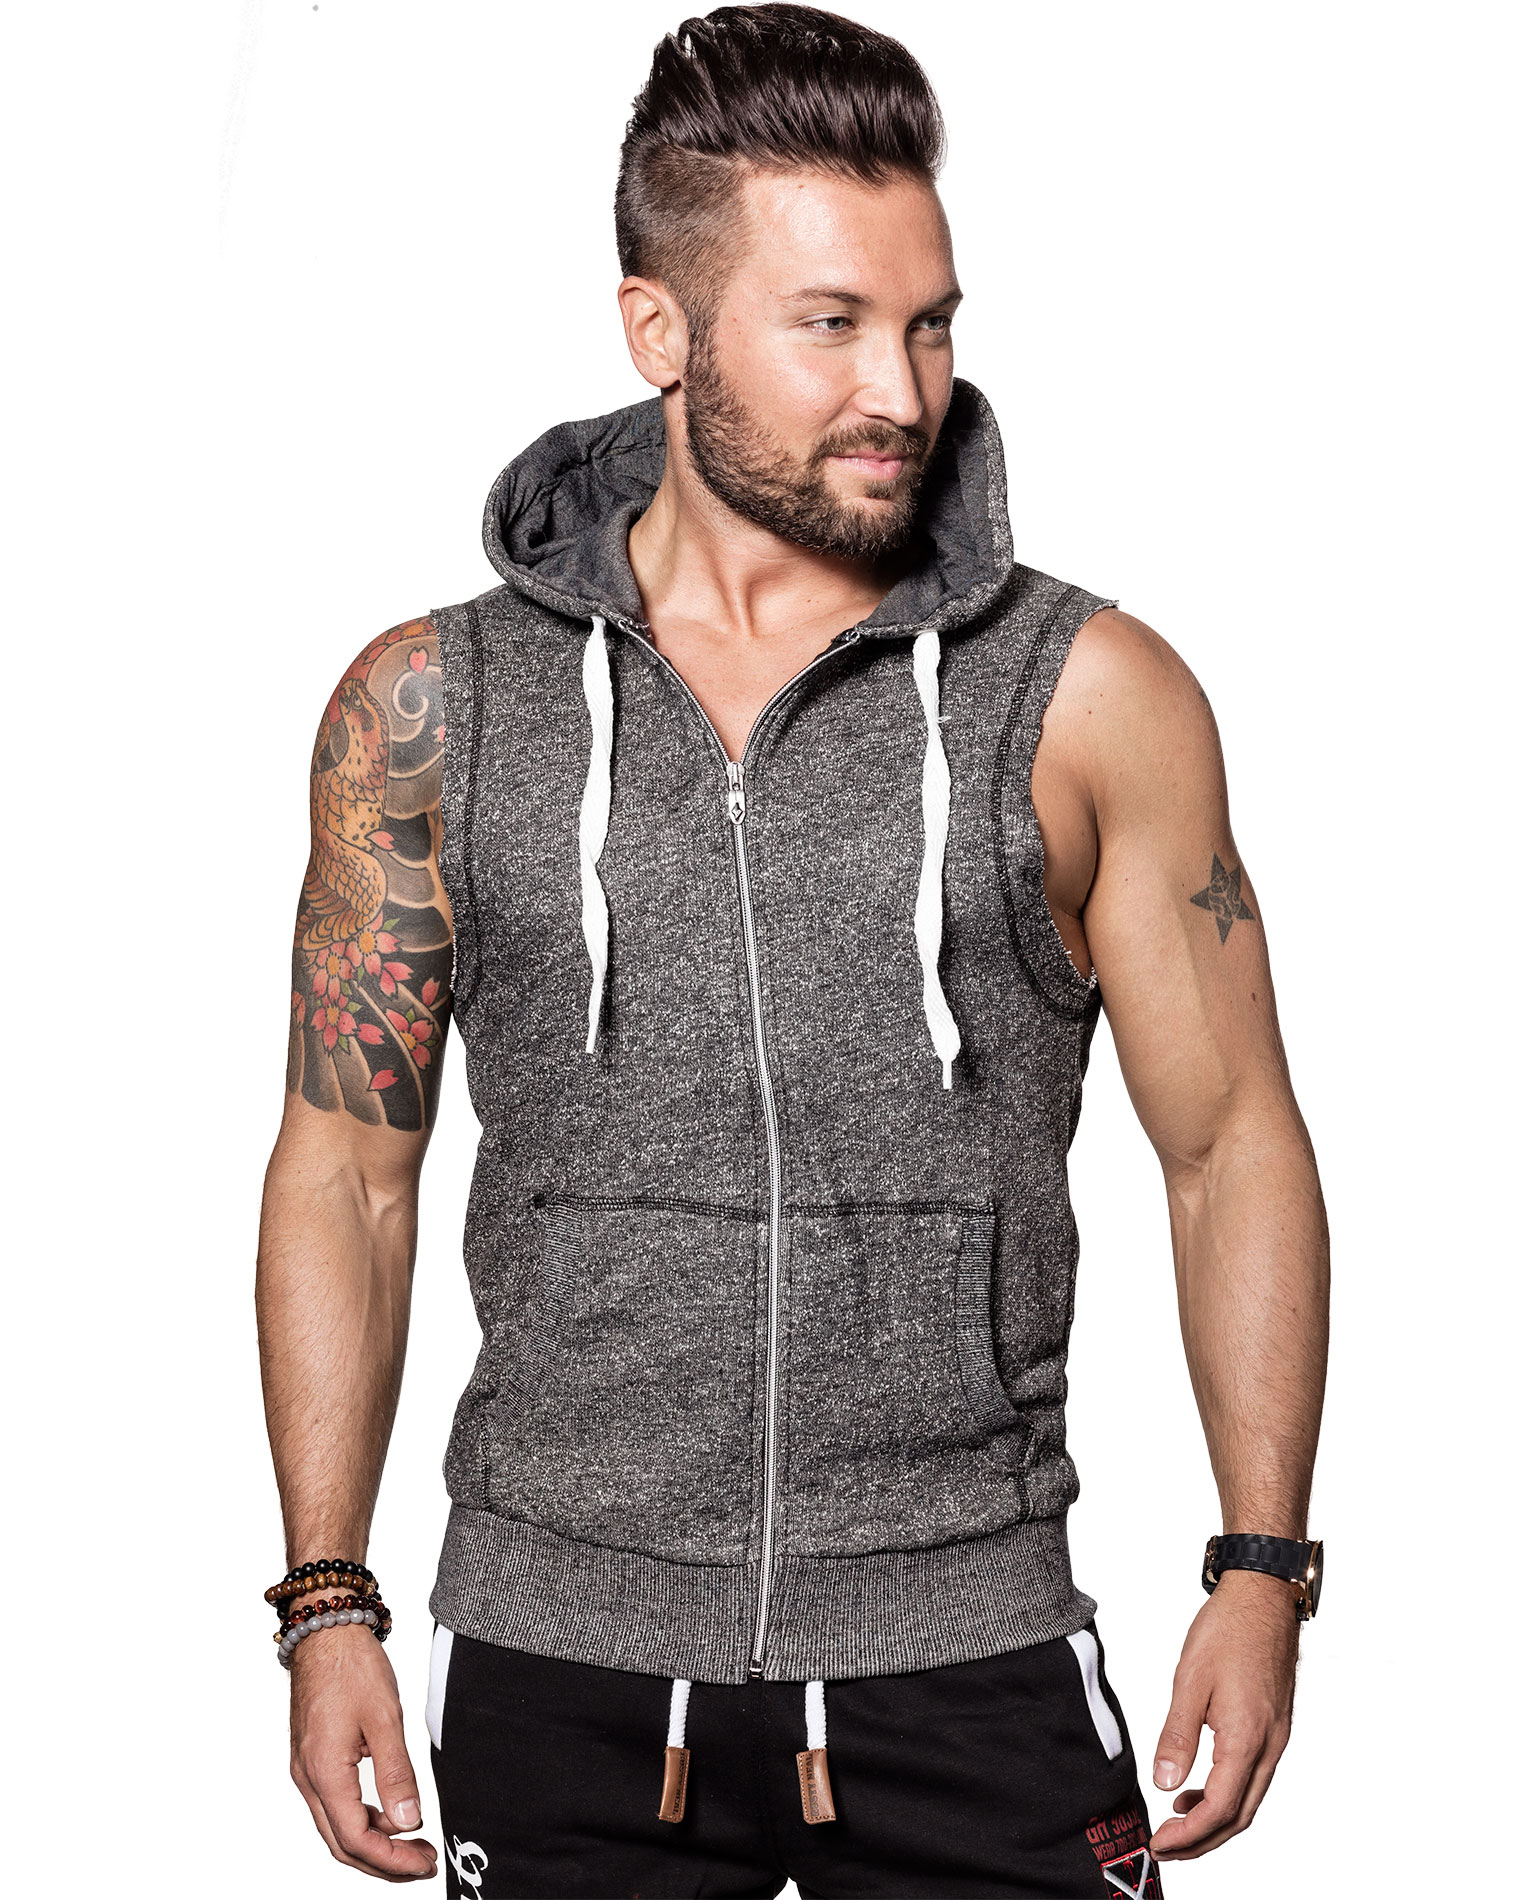 Shop a wide selection of men's sleeveless hoodies from DICK'S Sporting Goods. Find men's sleeveless hoodies from Nike, Under Armour & more top-rated brands.